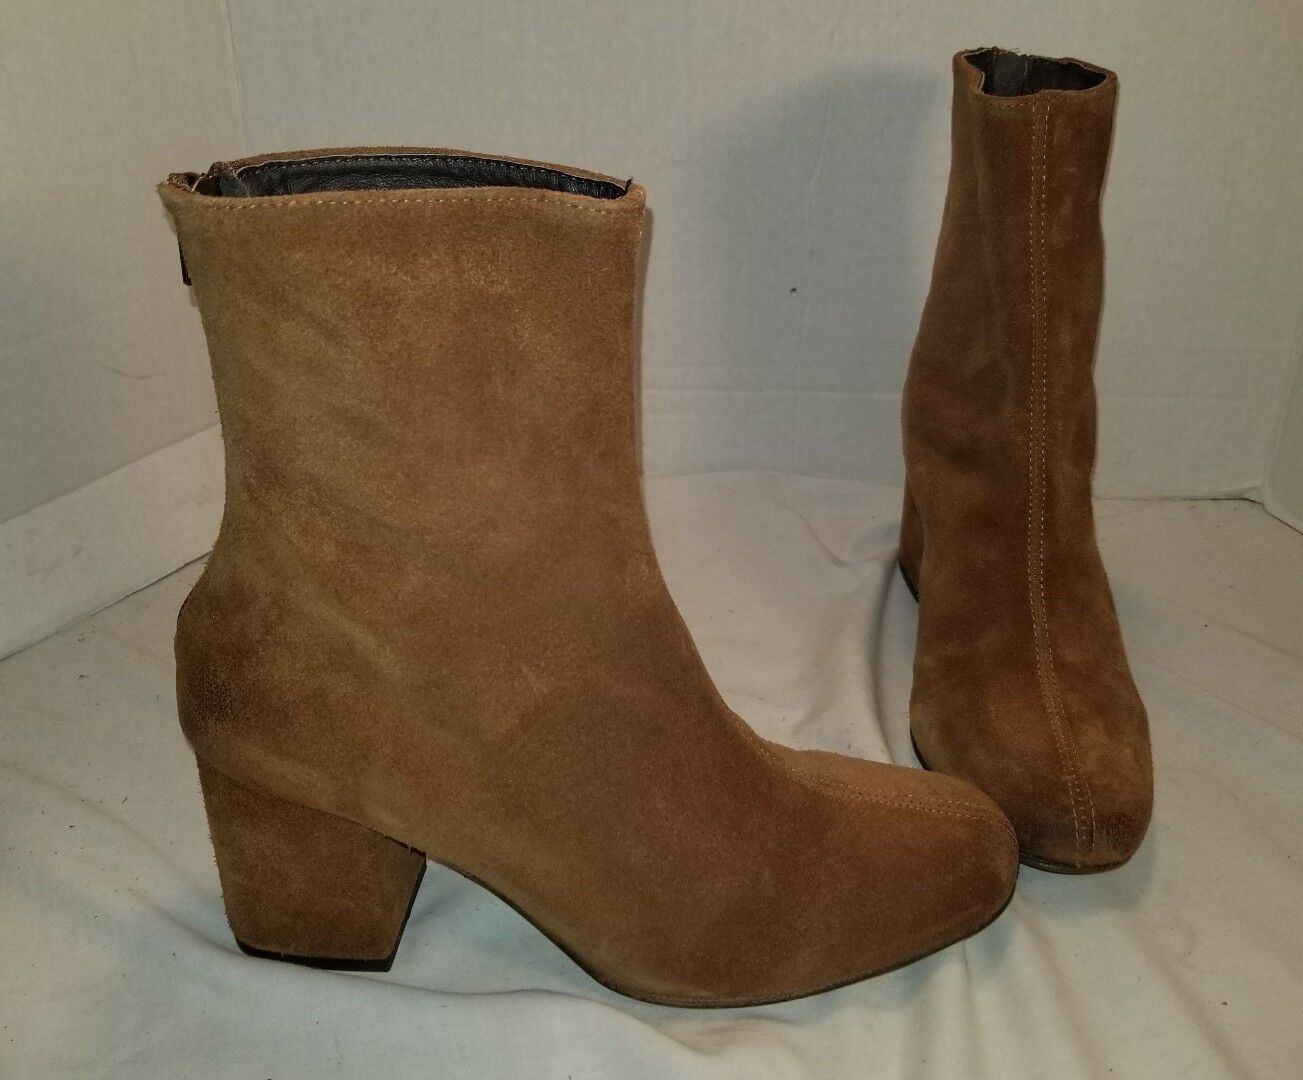 ANTHROPOLOGIE FREE PEOPLE WORLD TOUR BROWN SUEDE ANKLE BOOTS US 8